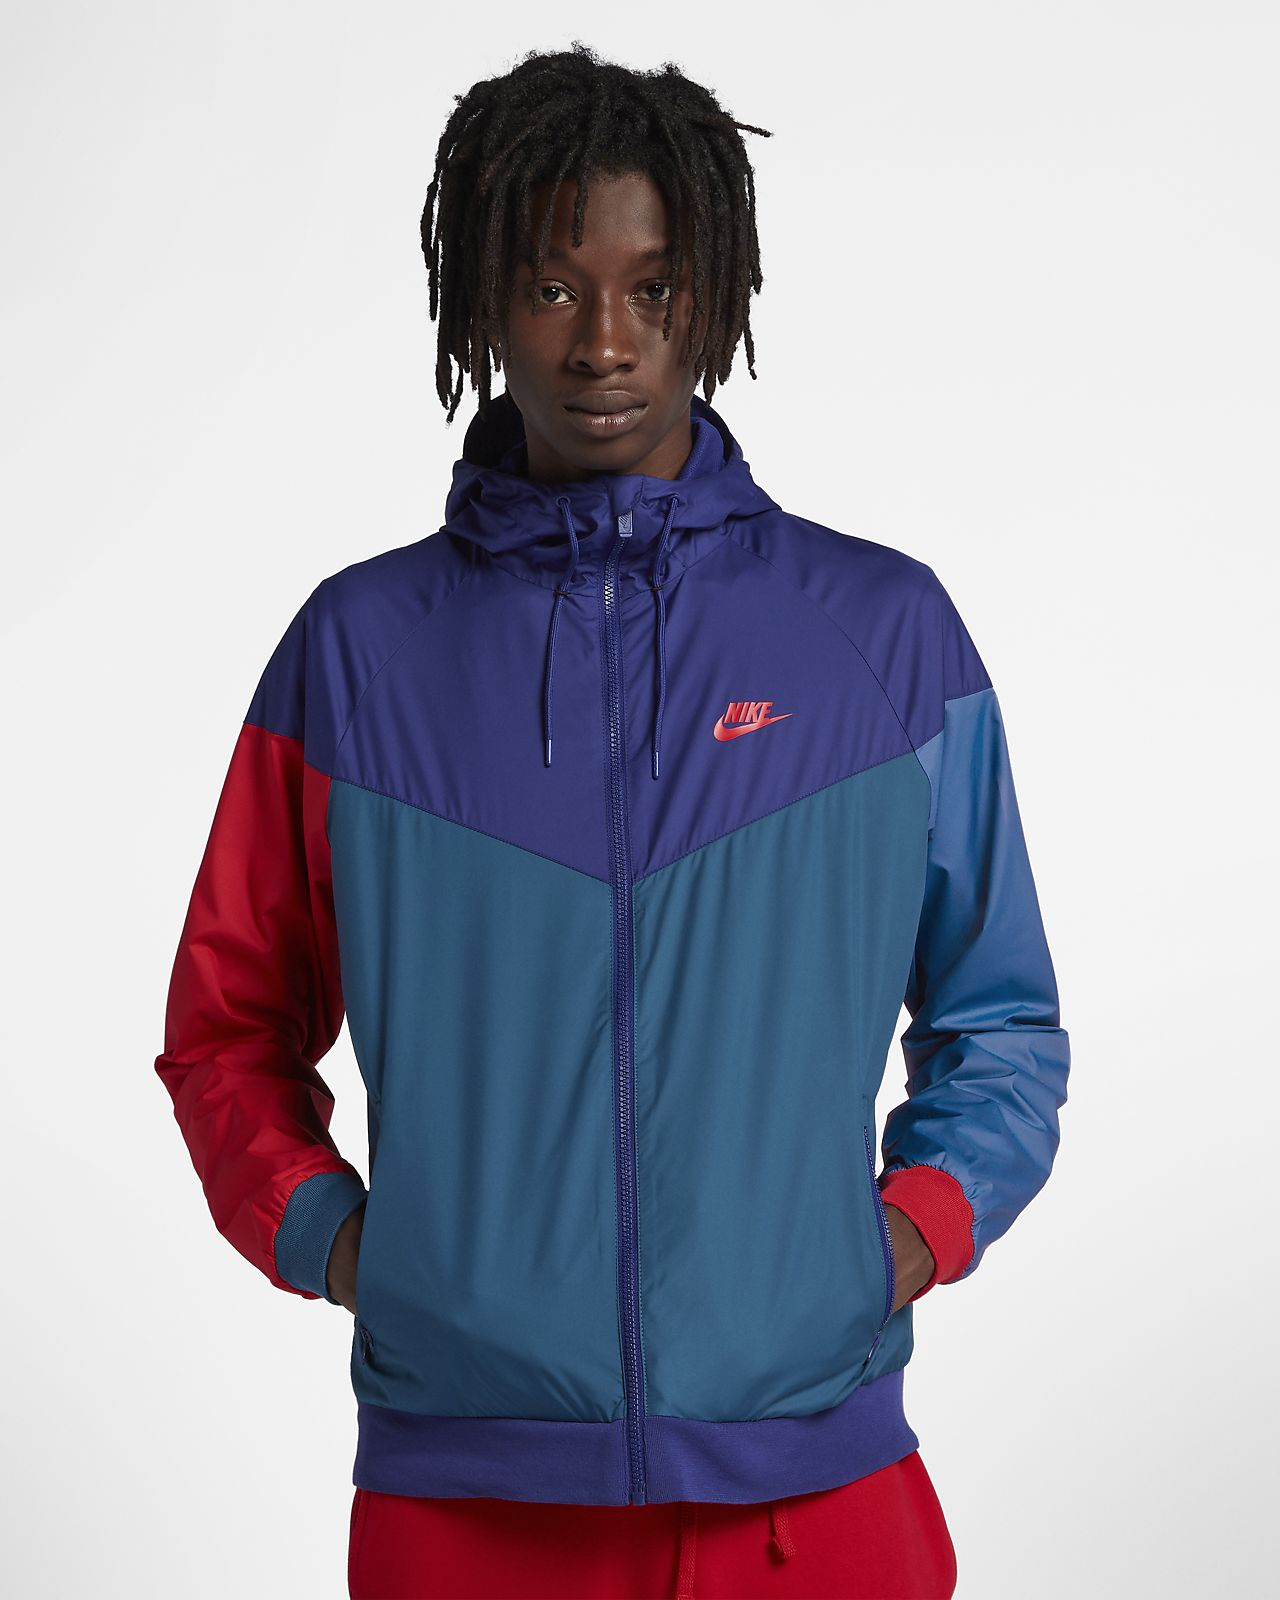 f1e1e5c053 Low Resolution Nike Sportswear Windrunner Men s Jacket Nike Sportswear  Windrunner Men s Jacket